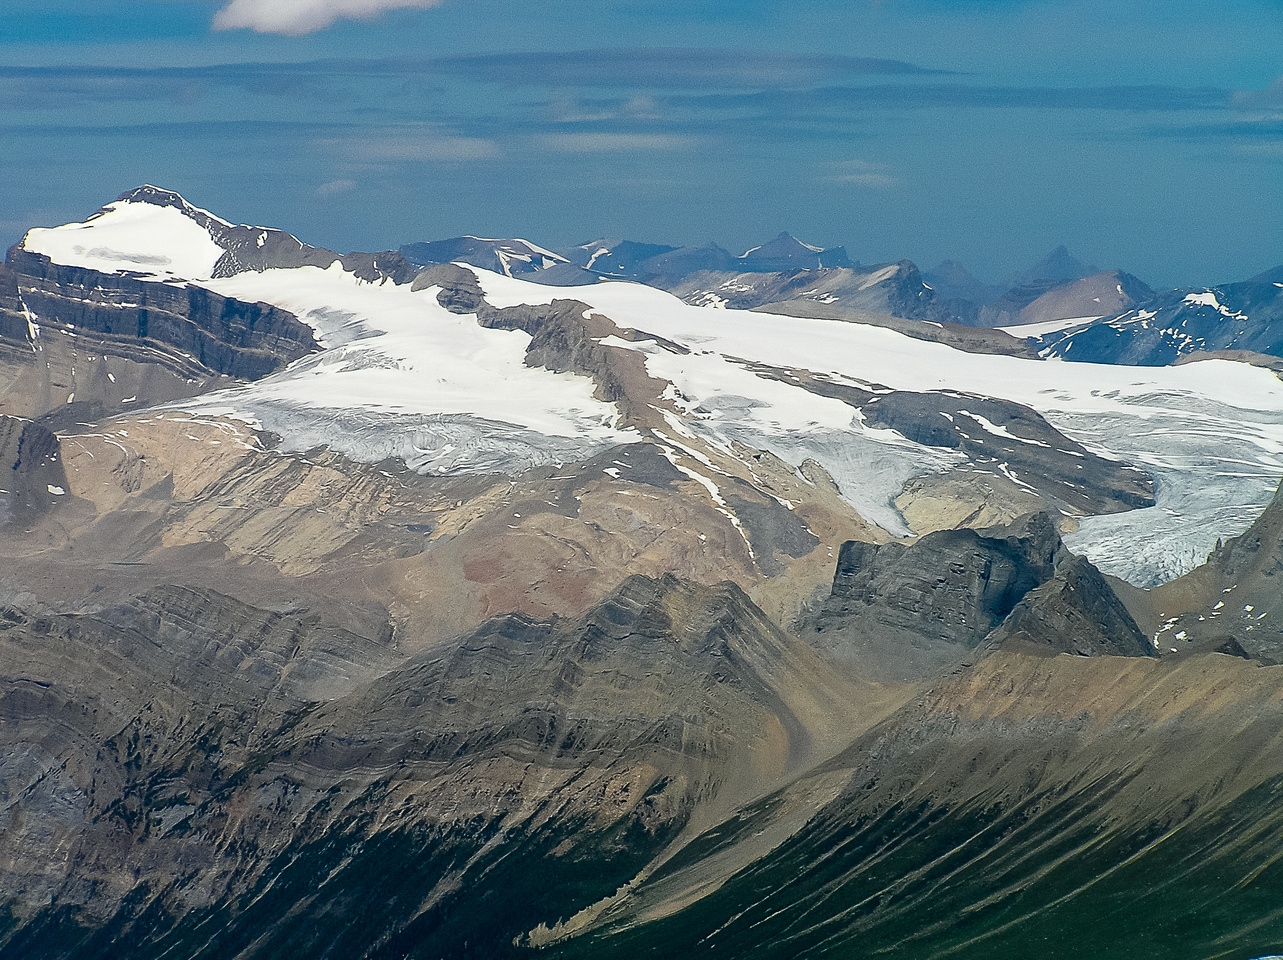 The long ridge of Mount Balfour rises right to left over the Wapta Icefield.